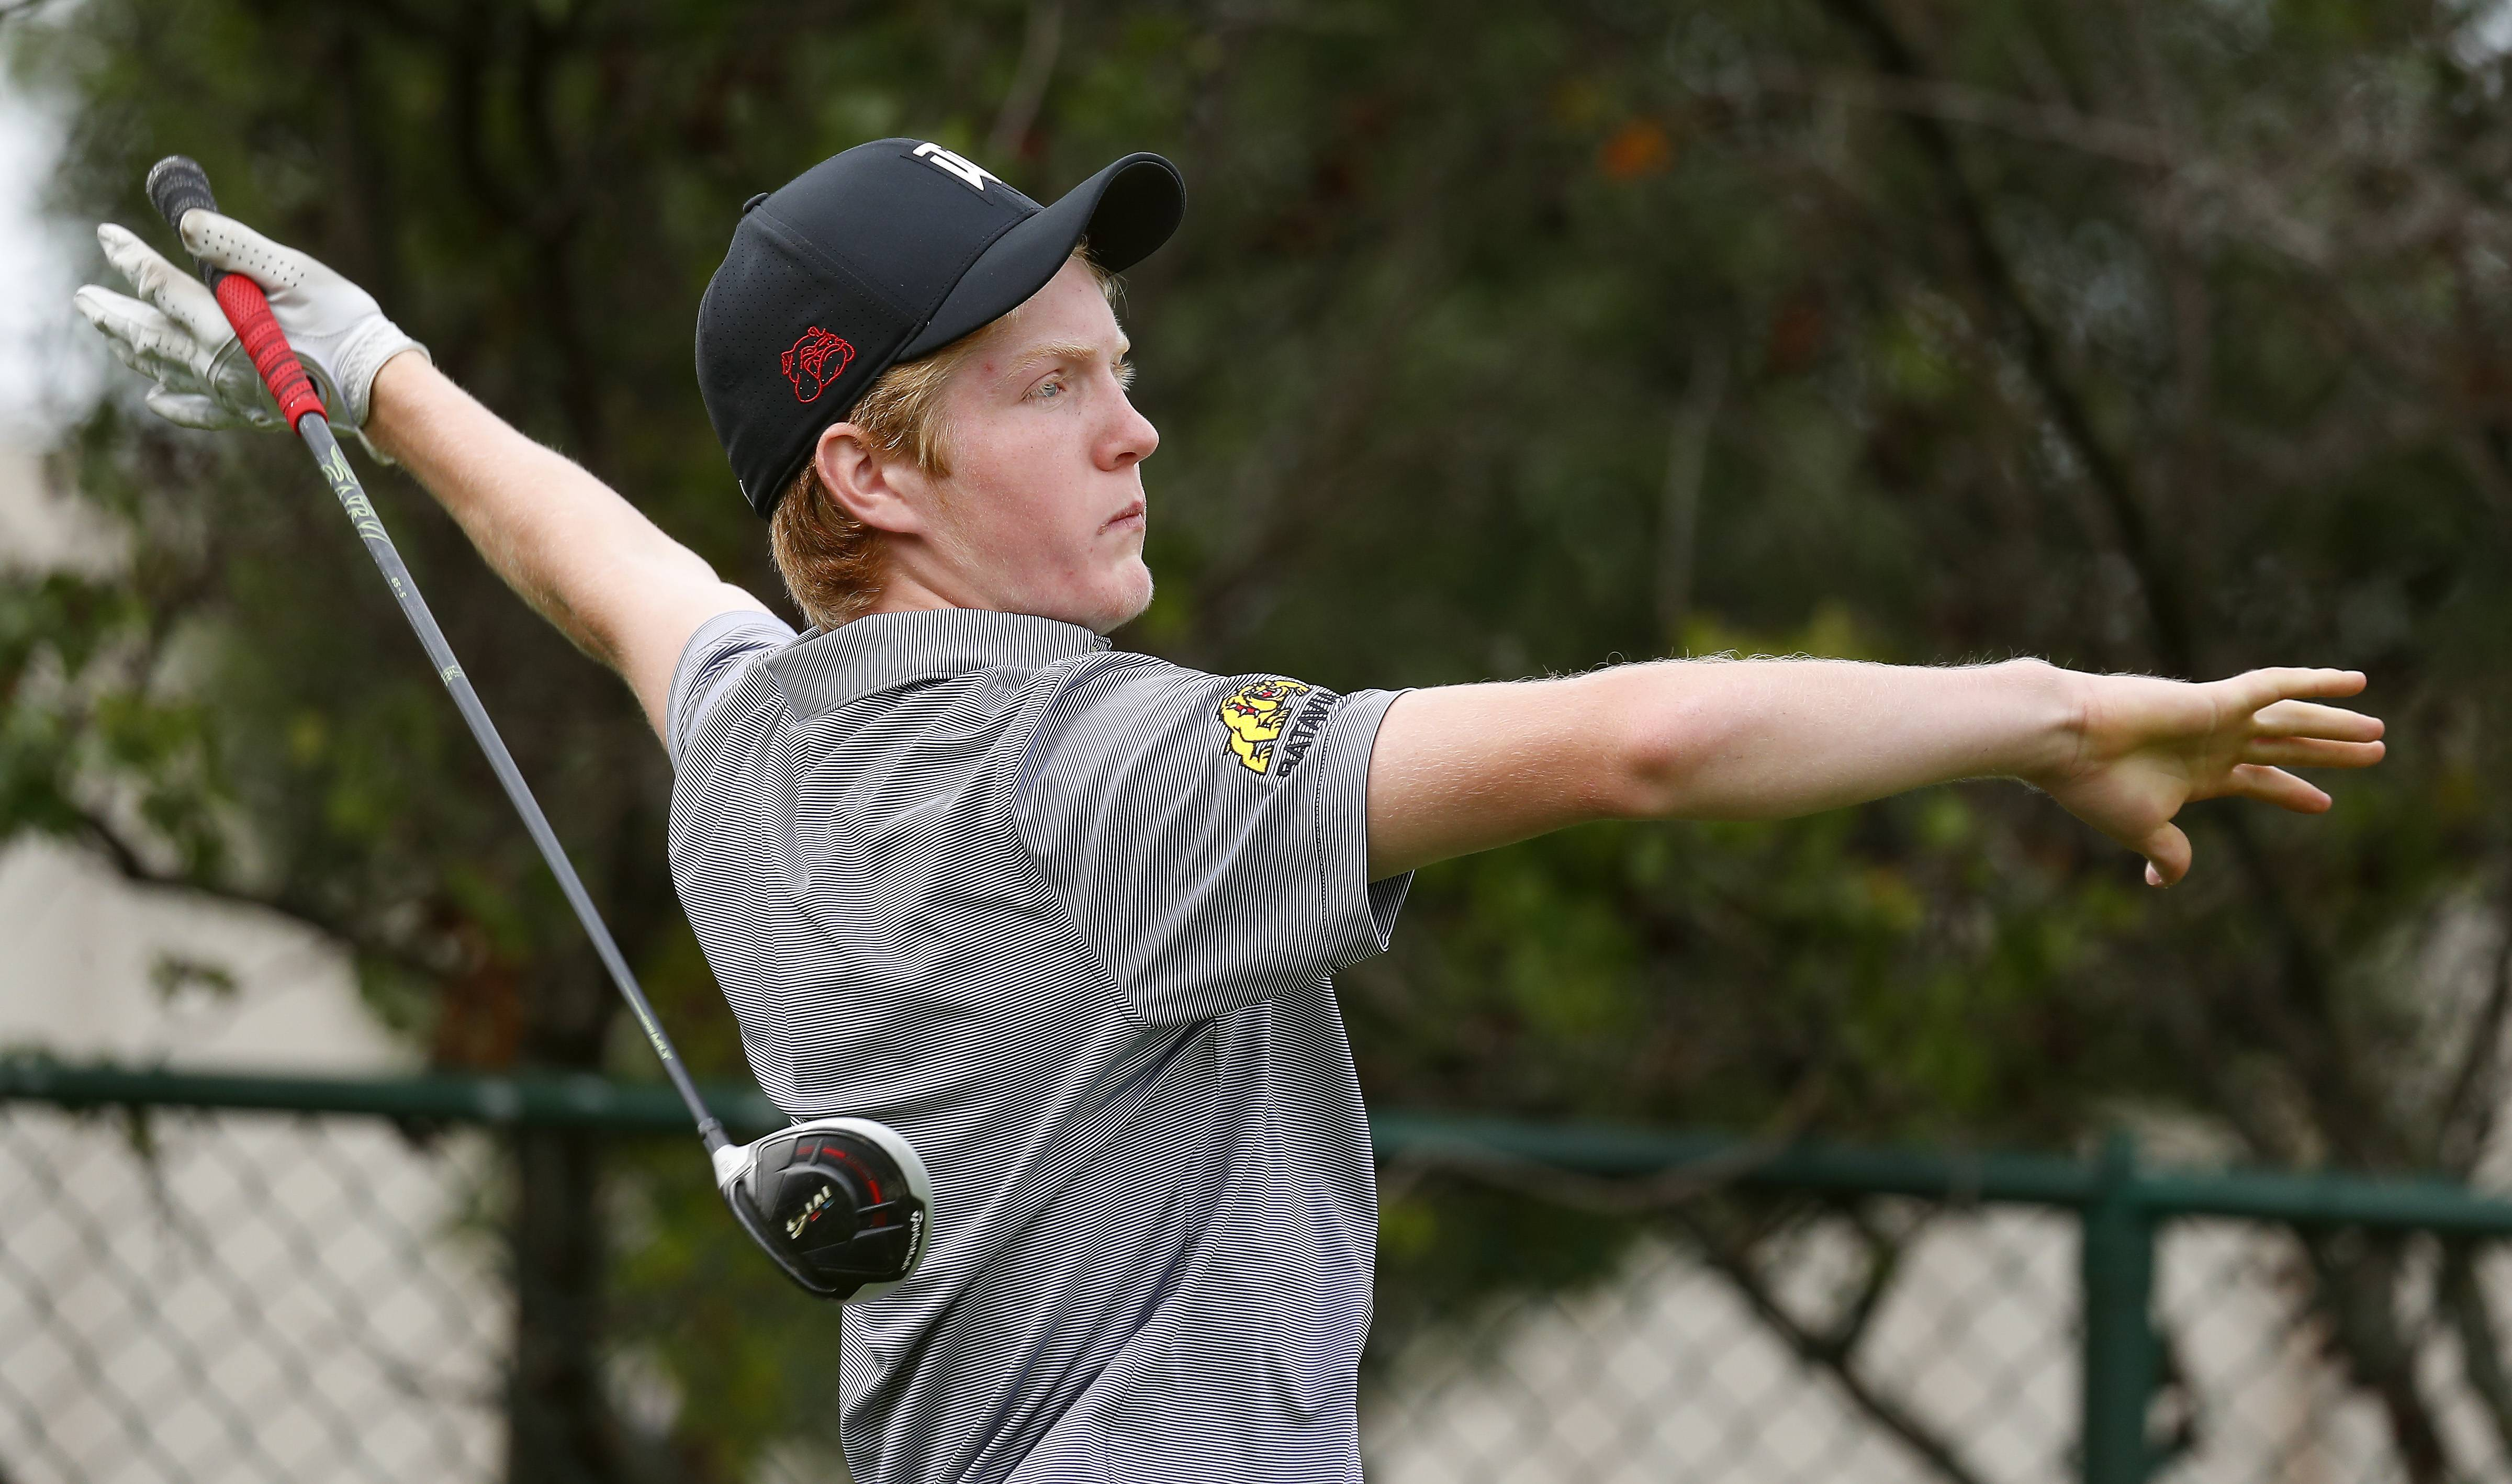 Batavia's Will Huber Saturday during golf at Pheasant Run Golf Course in St. Charles.